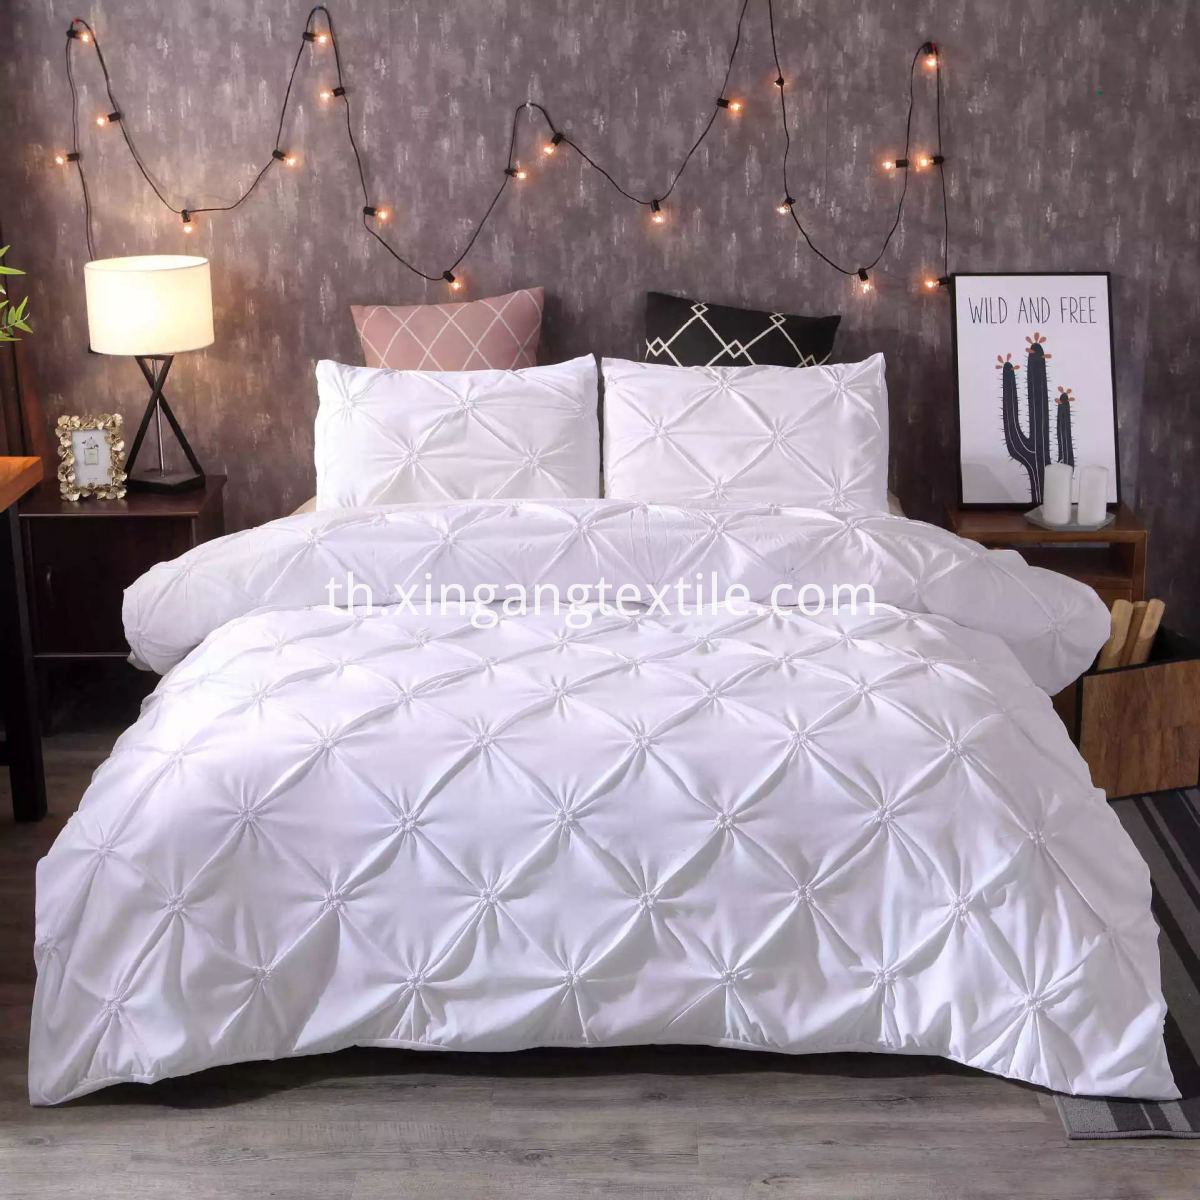 Duvet Cover Set White